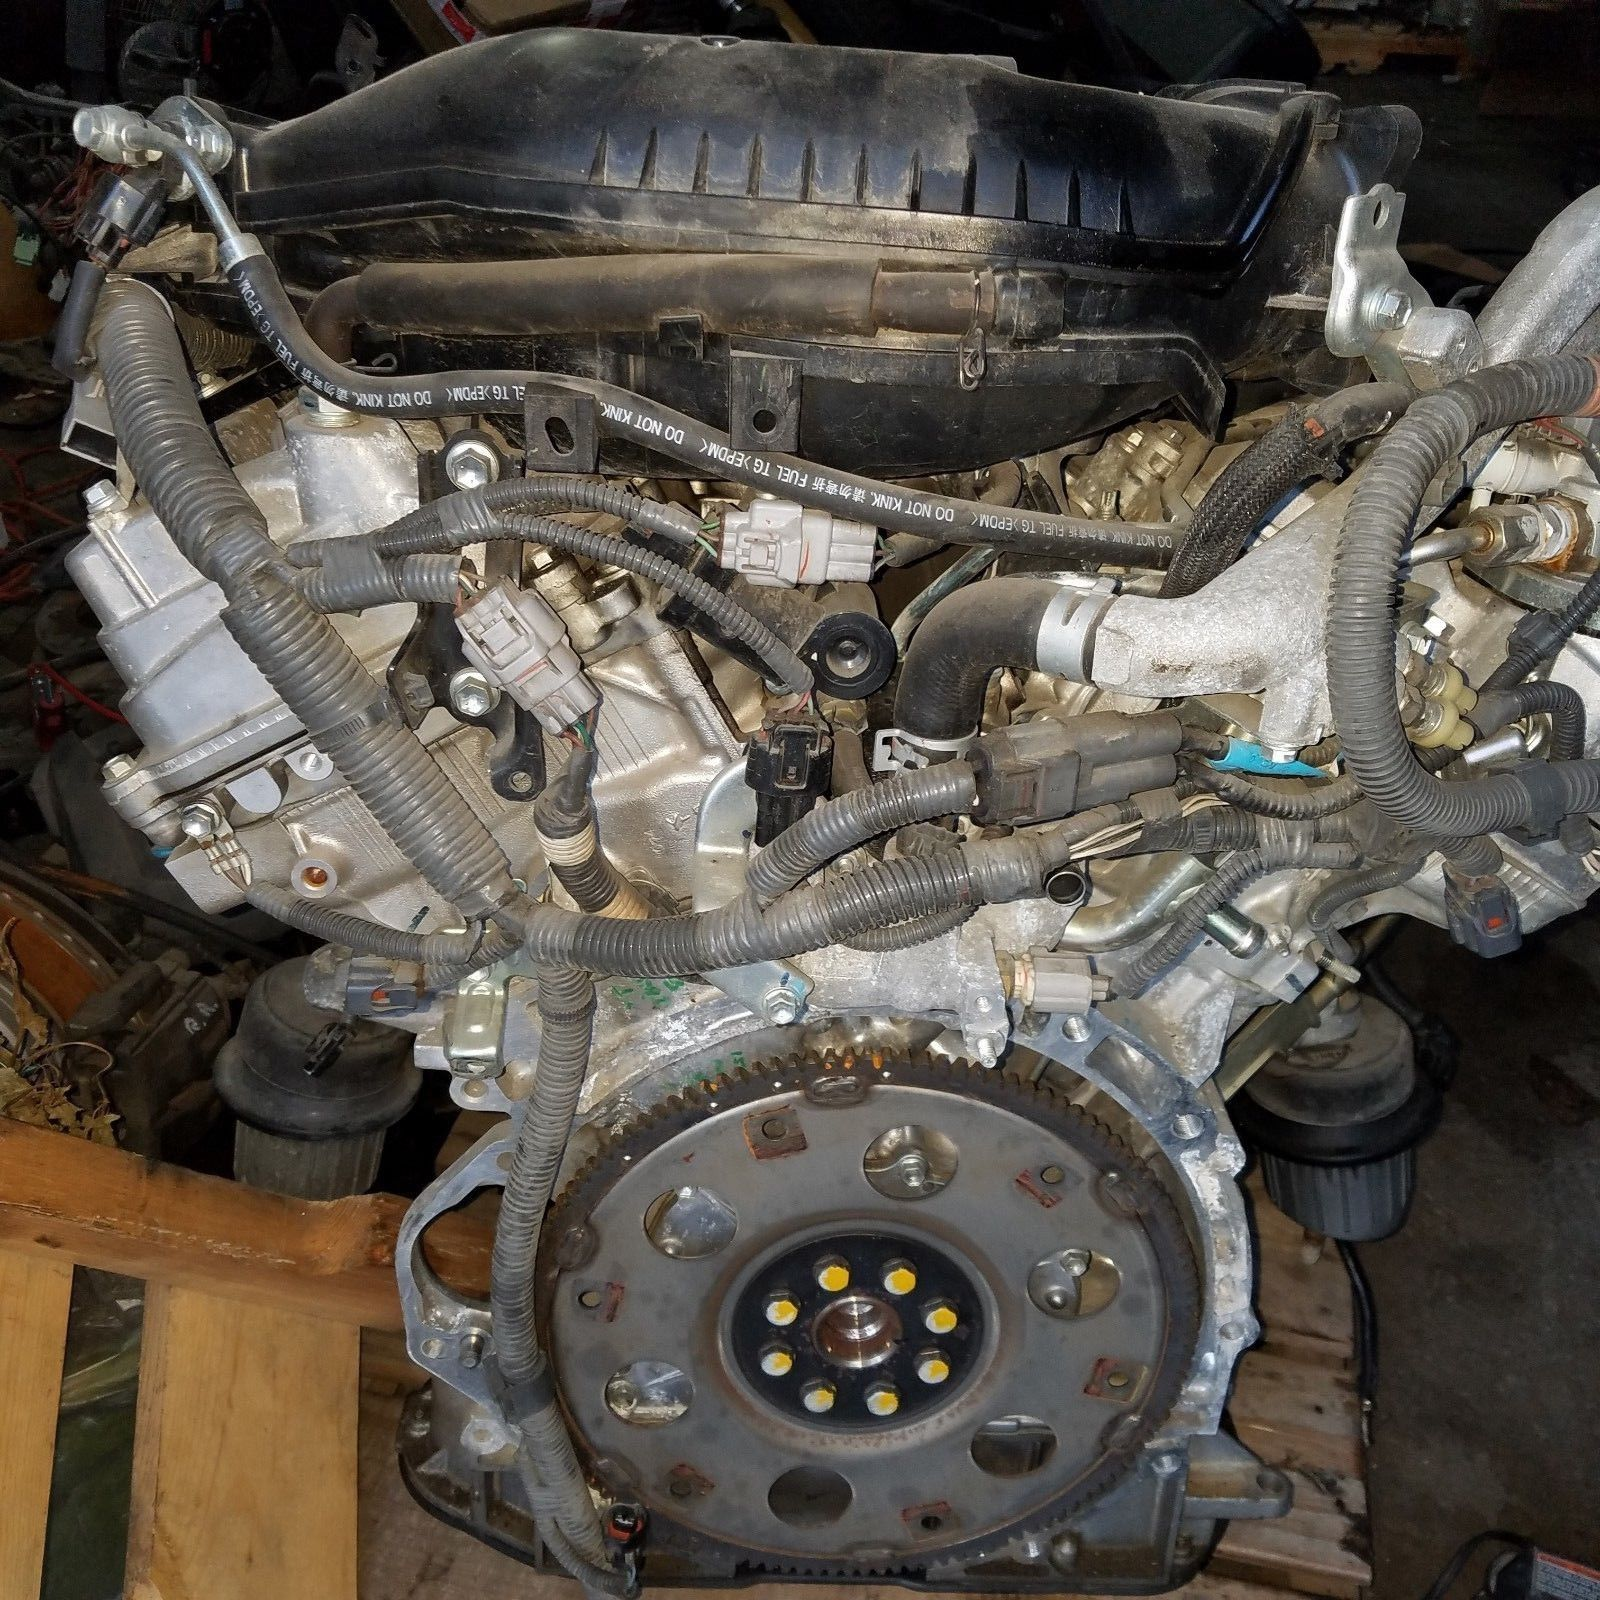 2006-2007-2008 LEXUS IS250 ENGINE MOTOR V6 2.5L RWD 129K MILES OEM Does Not Apply